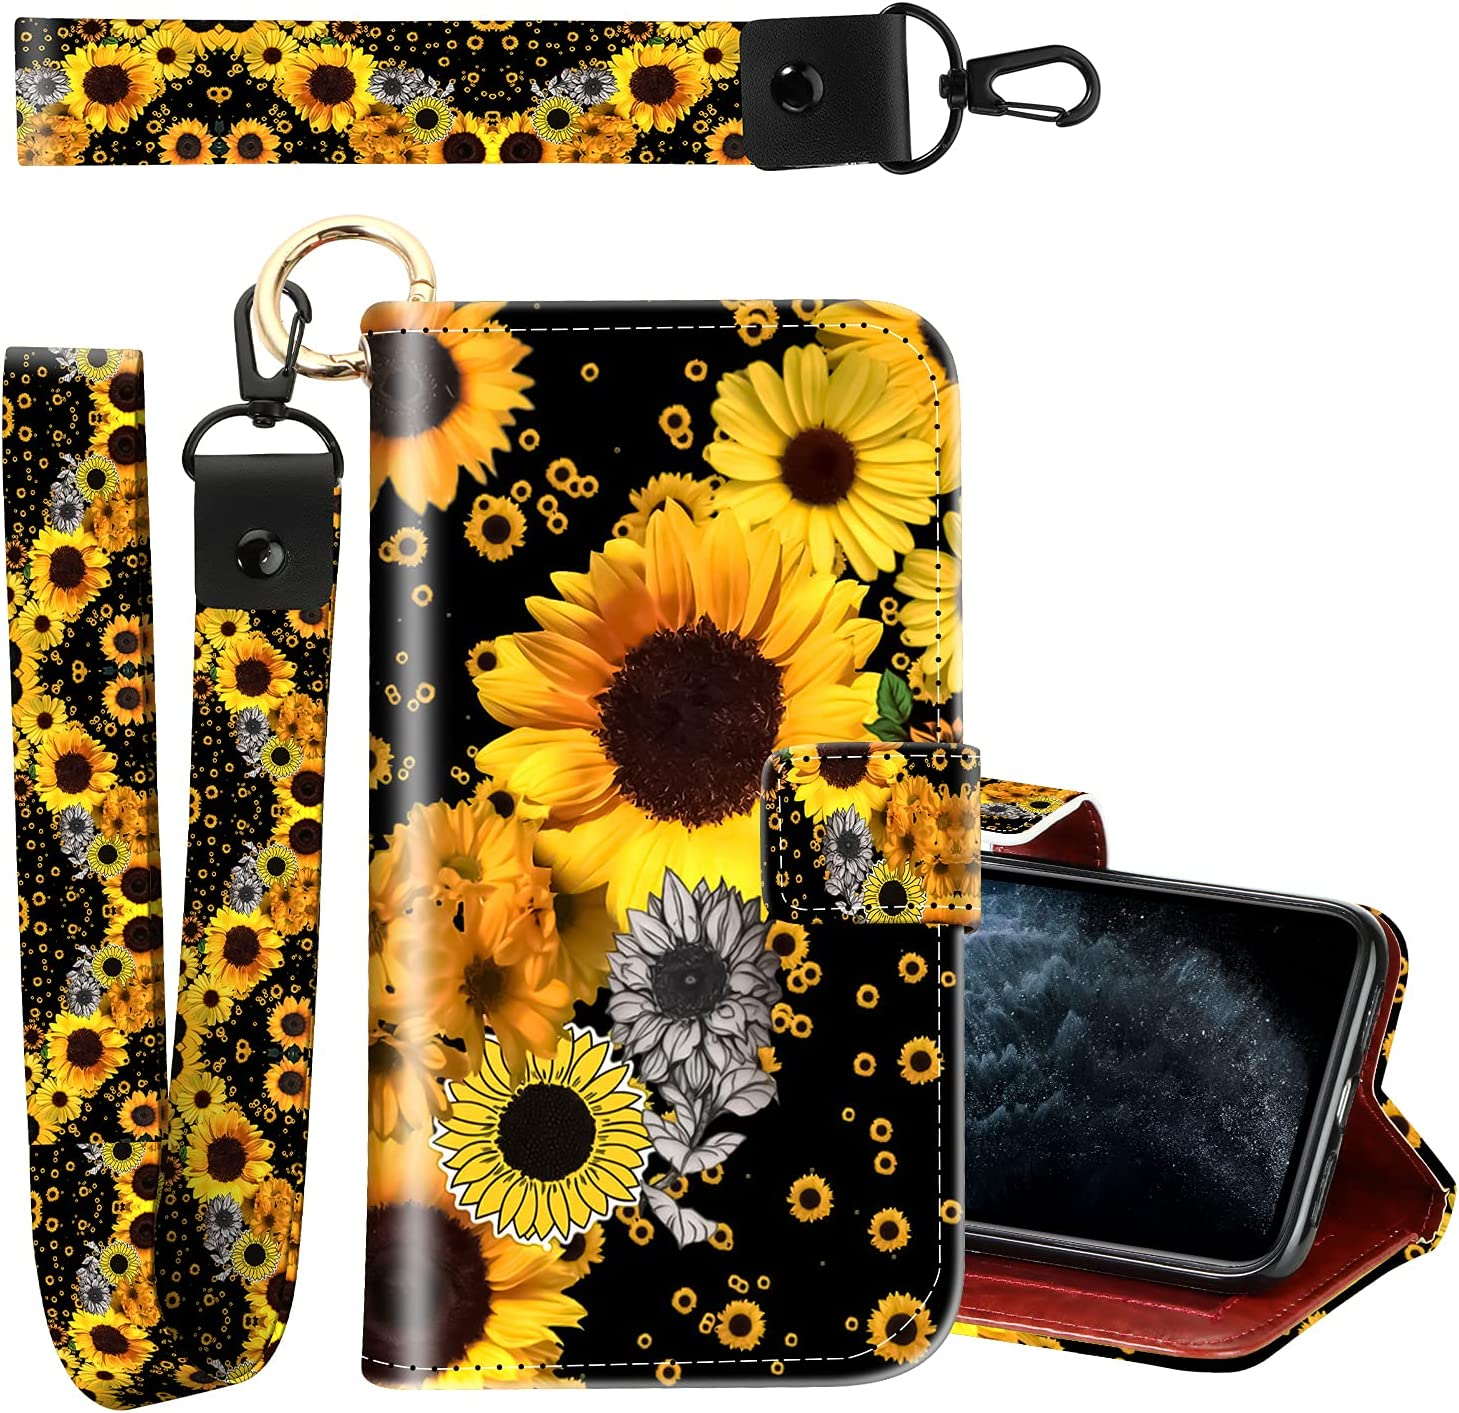 KANGHAR iPhone 11 ProMax Leather Case, Full Body Protective Flip Wallet Case with Card Slot and Bracket, Two Wrist Straps, Suitable for Women iPhone 11 ProMax 6.5 Inch Sunflower